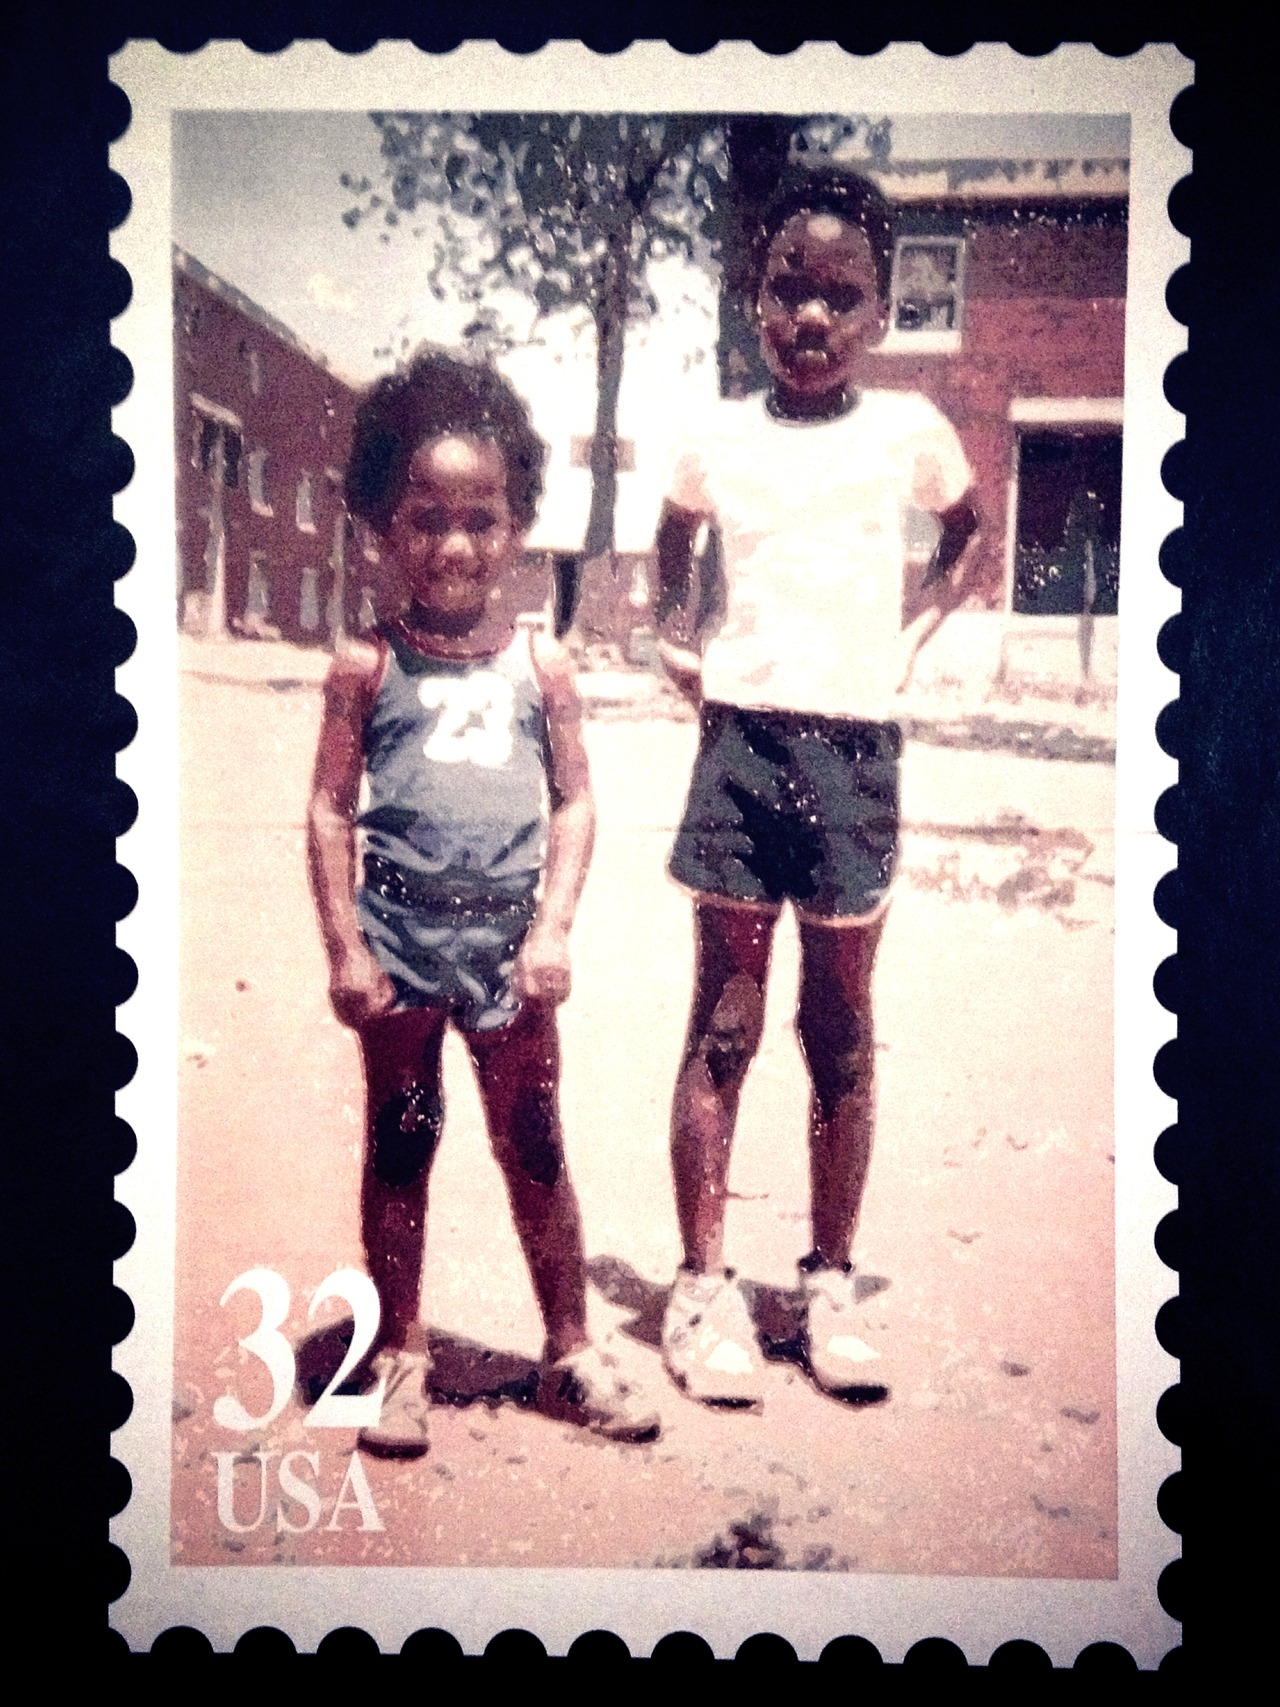 32¢ Cousins #peppersearching #pepper #photos #backindaday #kids #stamp #projects #sneakers